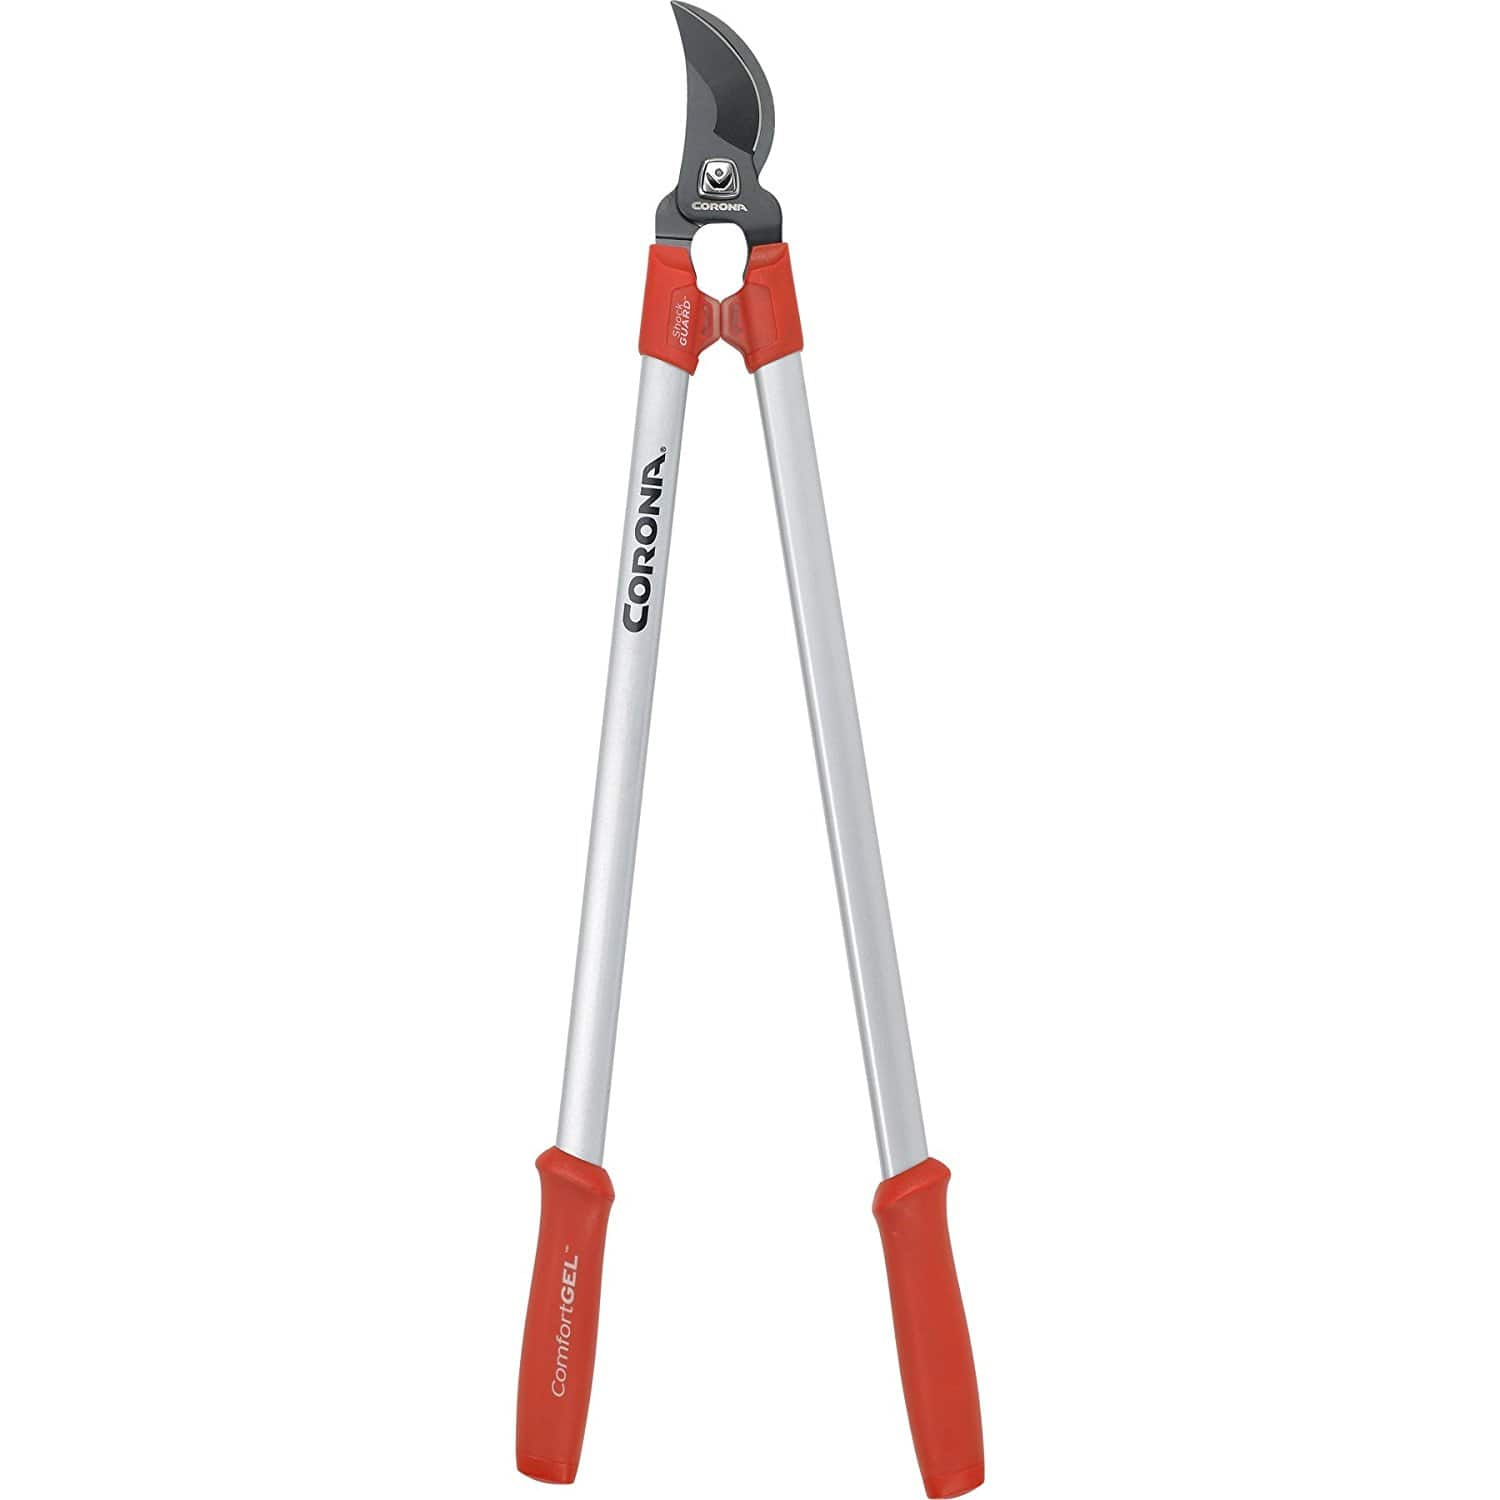 """Garden Lopper, 30"""" $19.56 at Amazon free shipping with prime"""